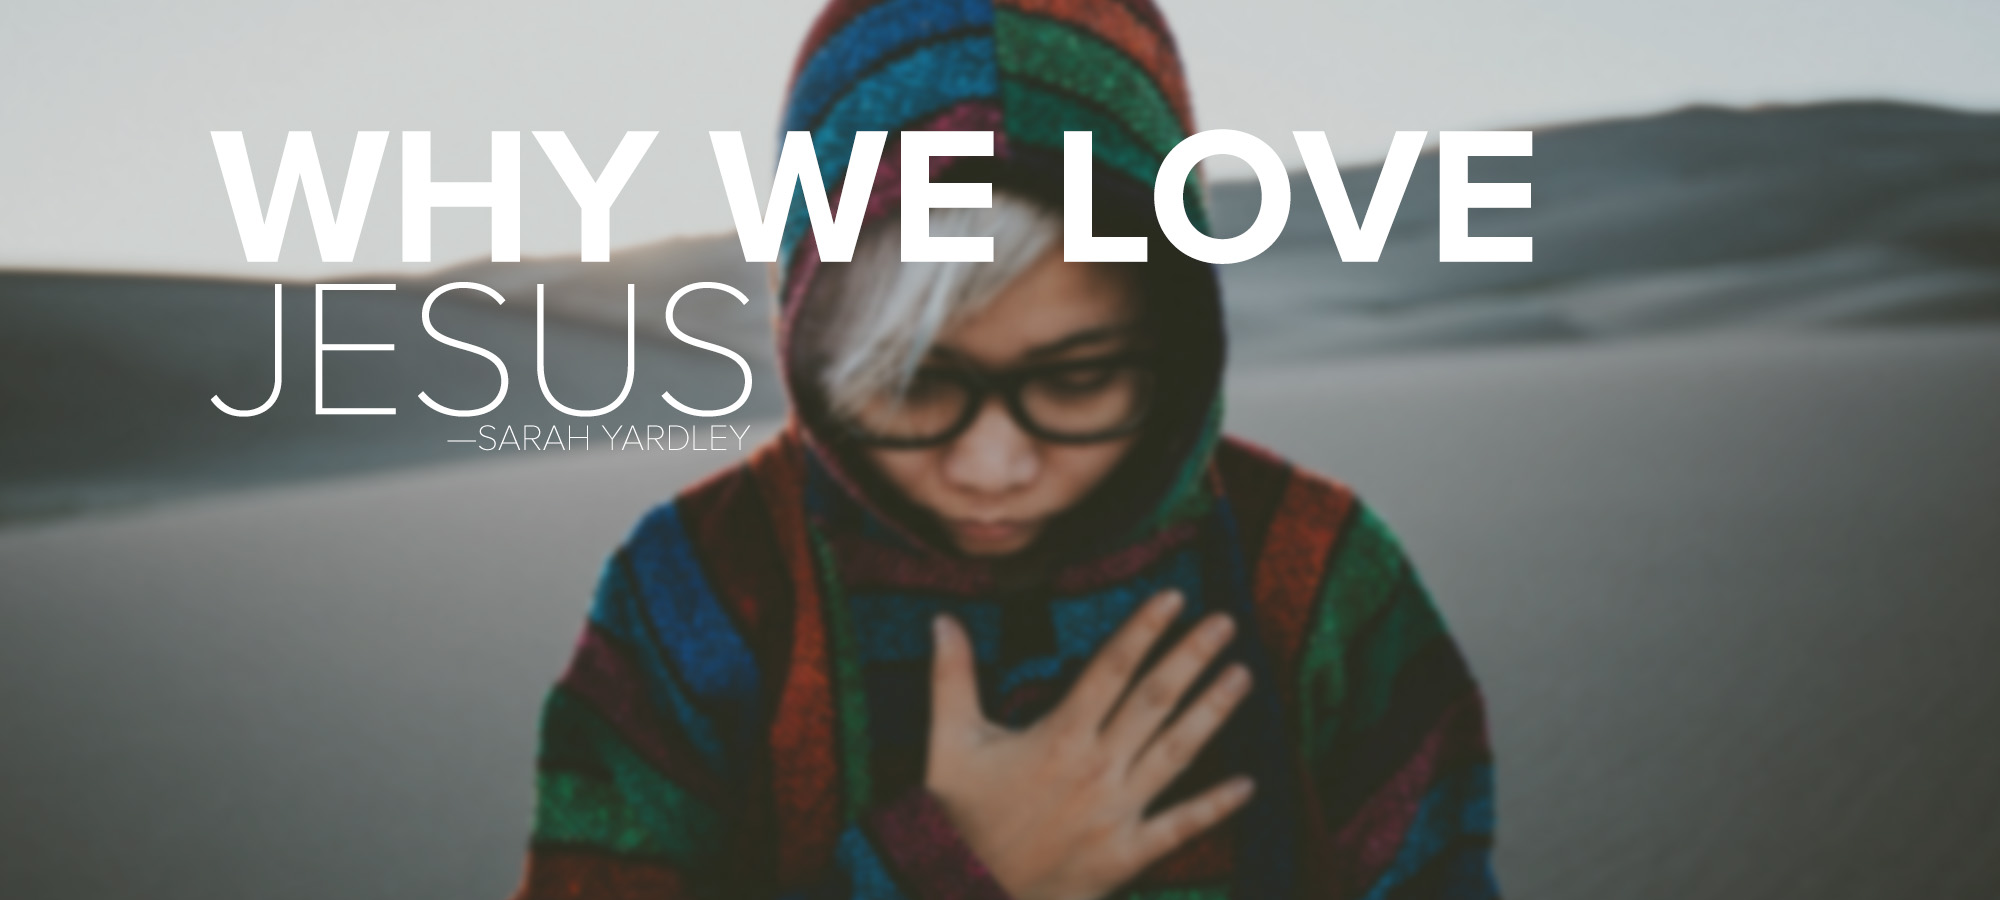 Why We Love Jesus